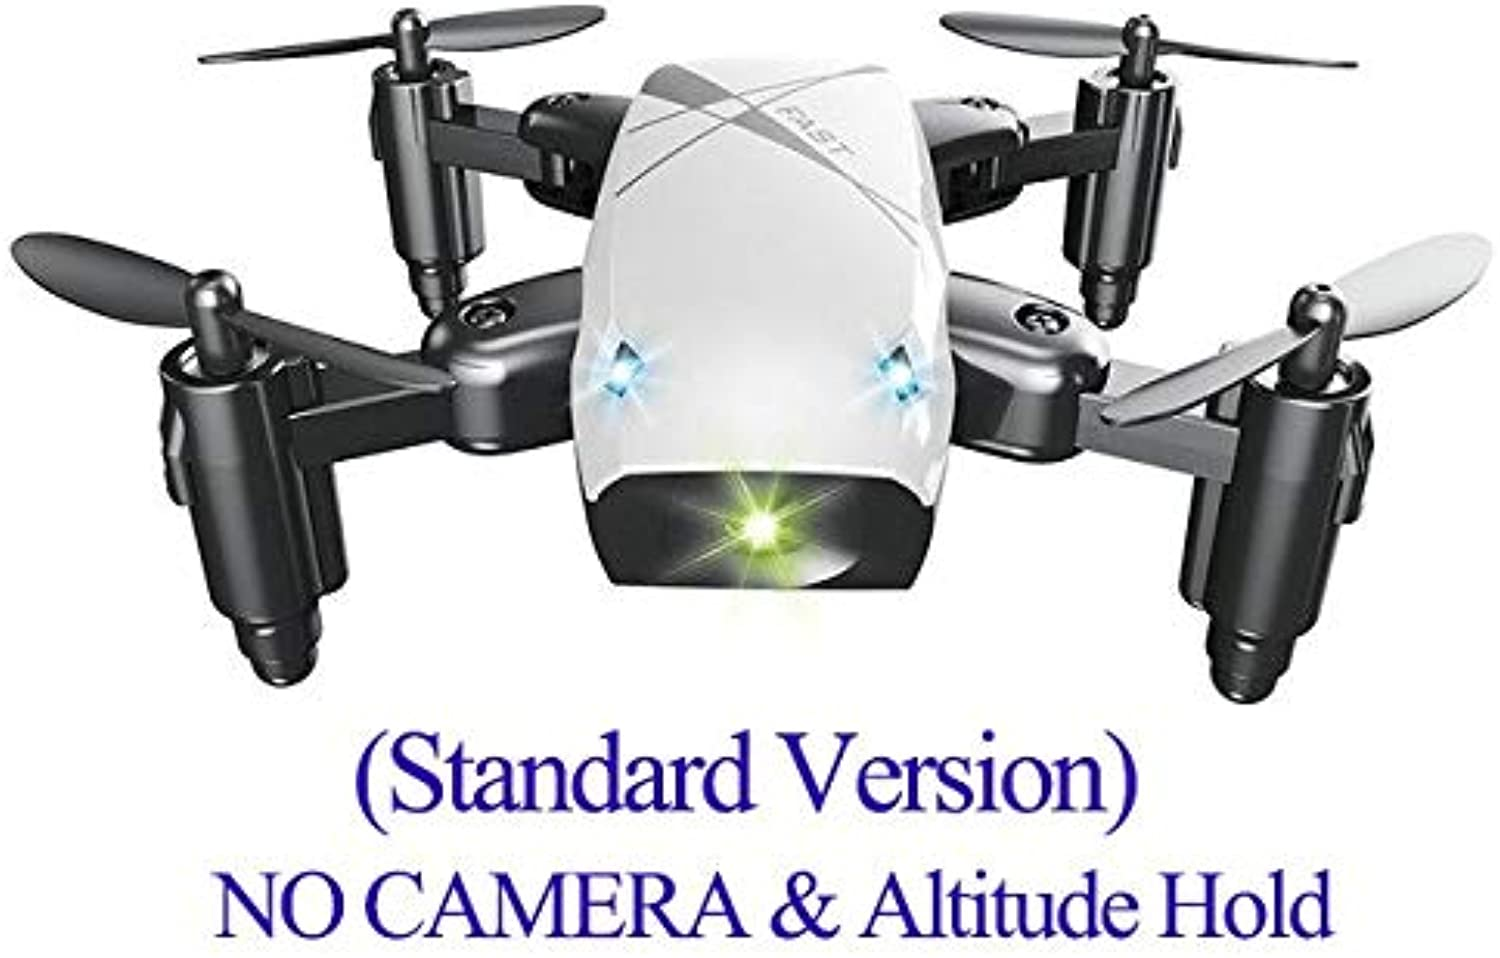 Generic S9 S9HW Mini Foldable Pocket Drones with Camera HD Dron FPV RC WiFi Quadcopter Helicopter VS Xs809hw JJRC H43WH JXD 523W No camera-175